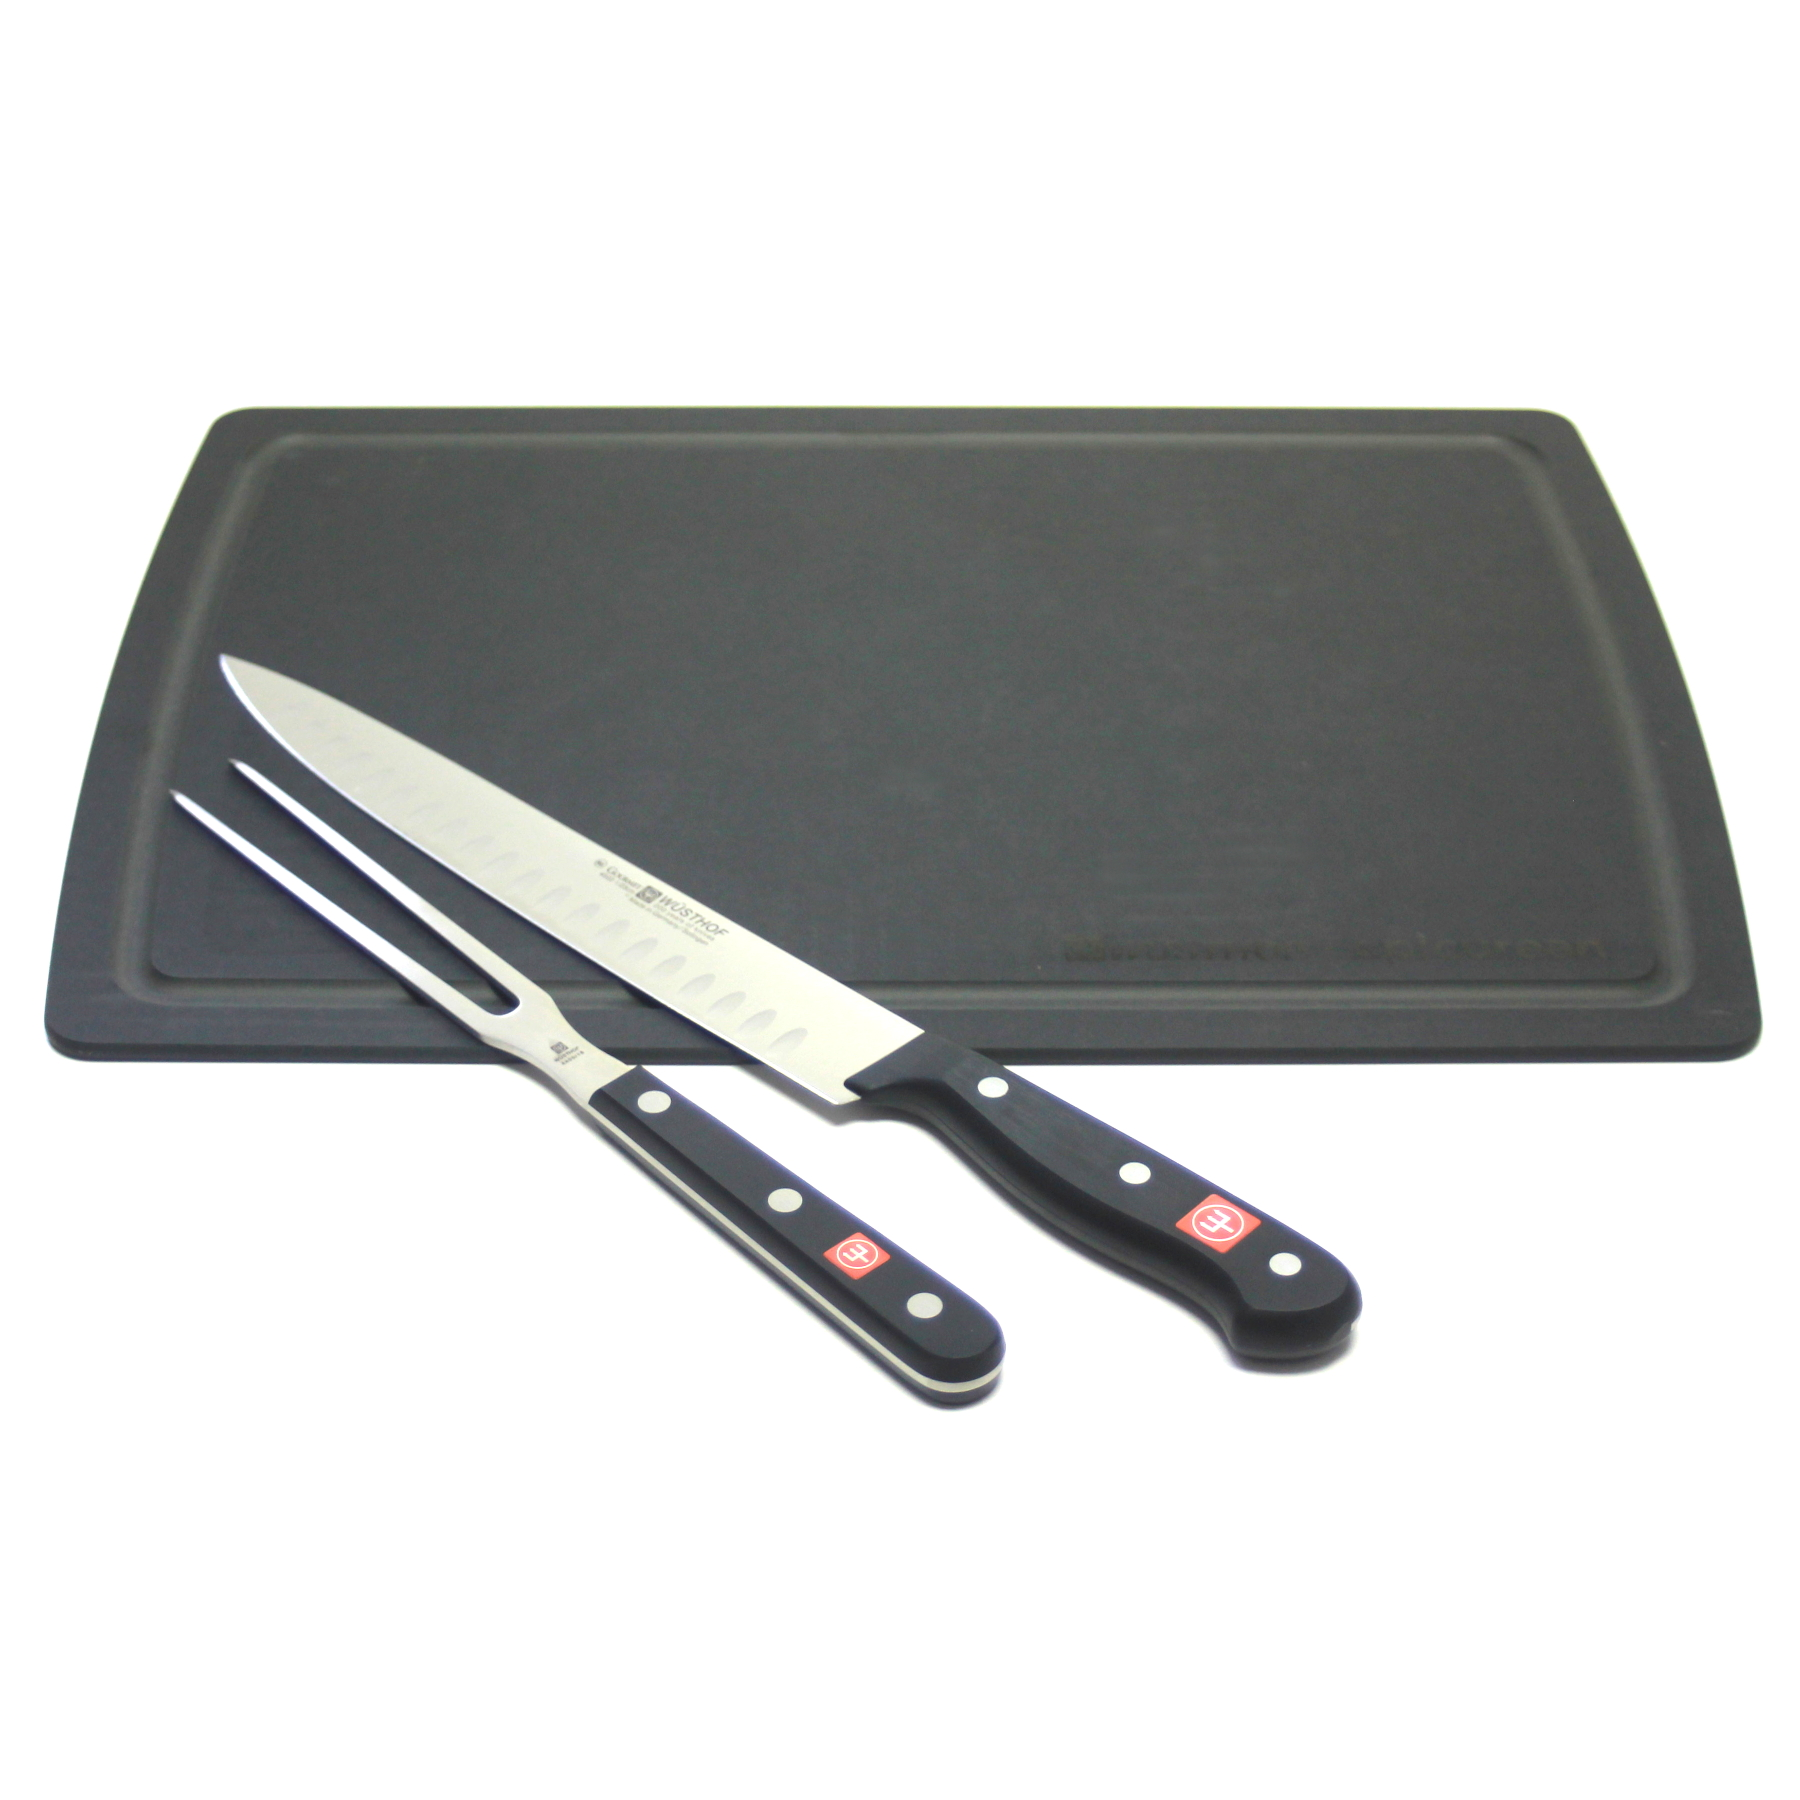 Wusthof Gourmet 2 Piece Carving Set with Black Epicurean Board